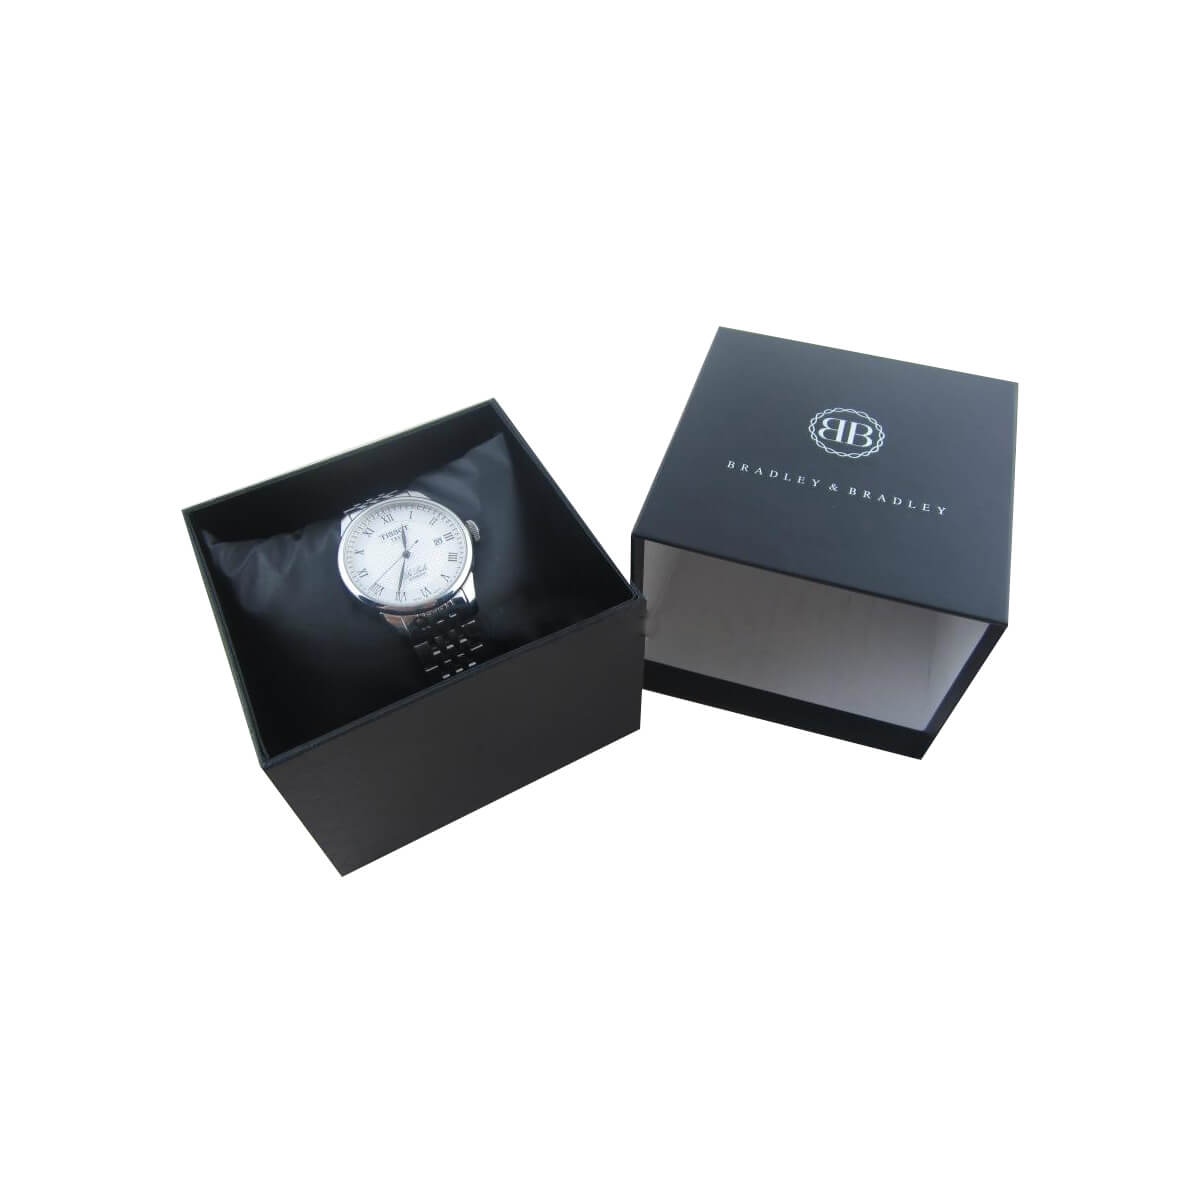 Watch boxes | Watch boxes for men | Luxury Watch boxes wholesale